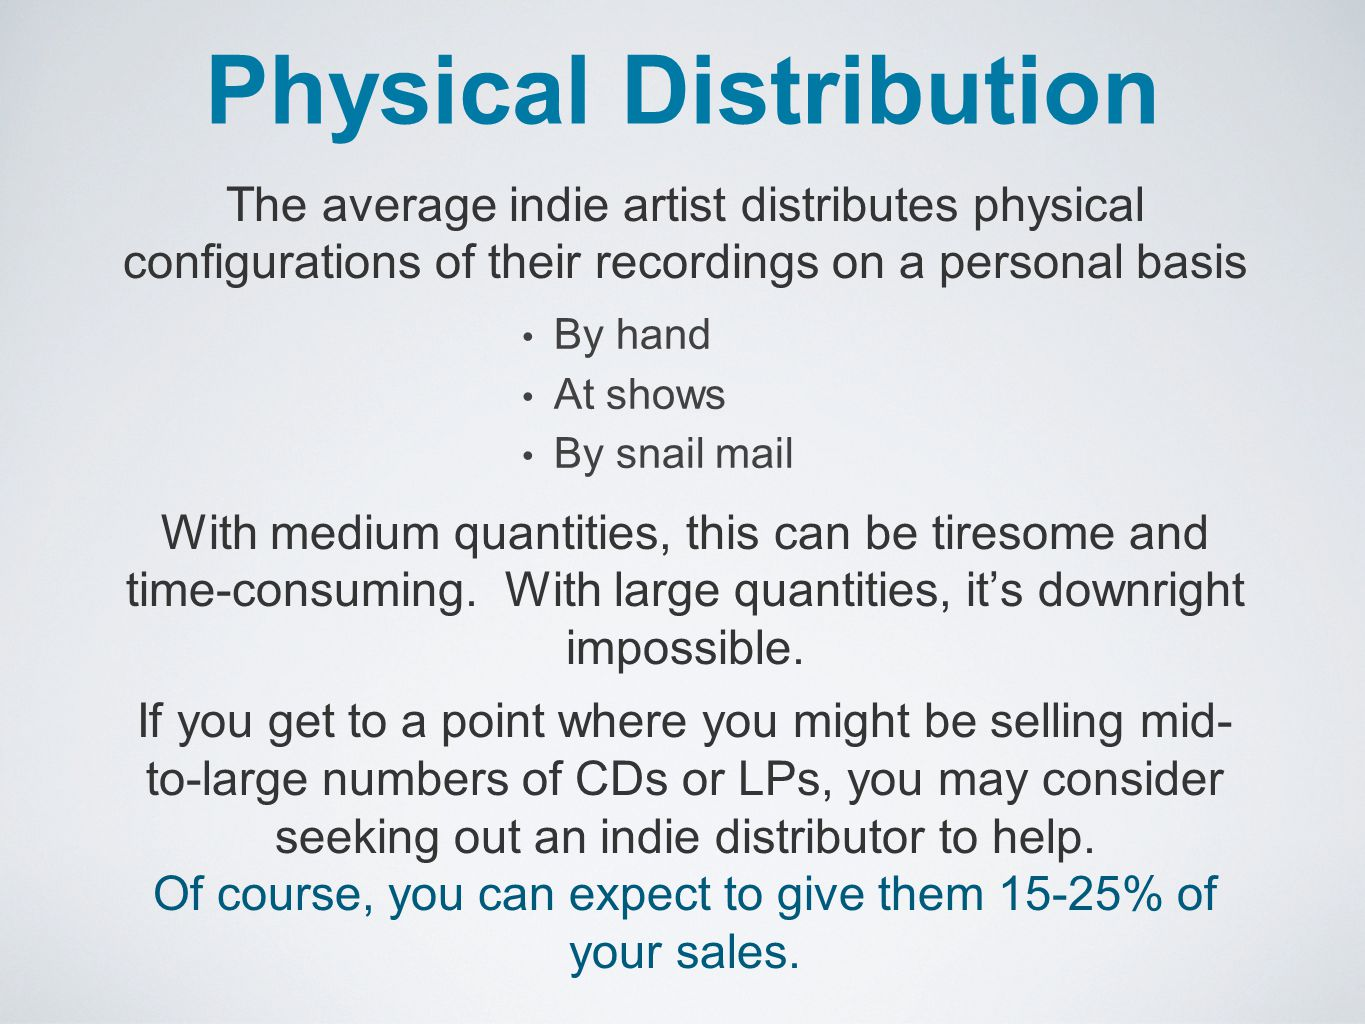 Physical Distribution By hand At shows By snail mail The average indie artist distributes physical configurations of their recordings on a personal basis With medium quantities, this can be tiresome and time-consuming.